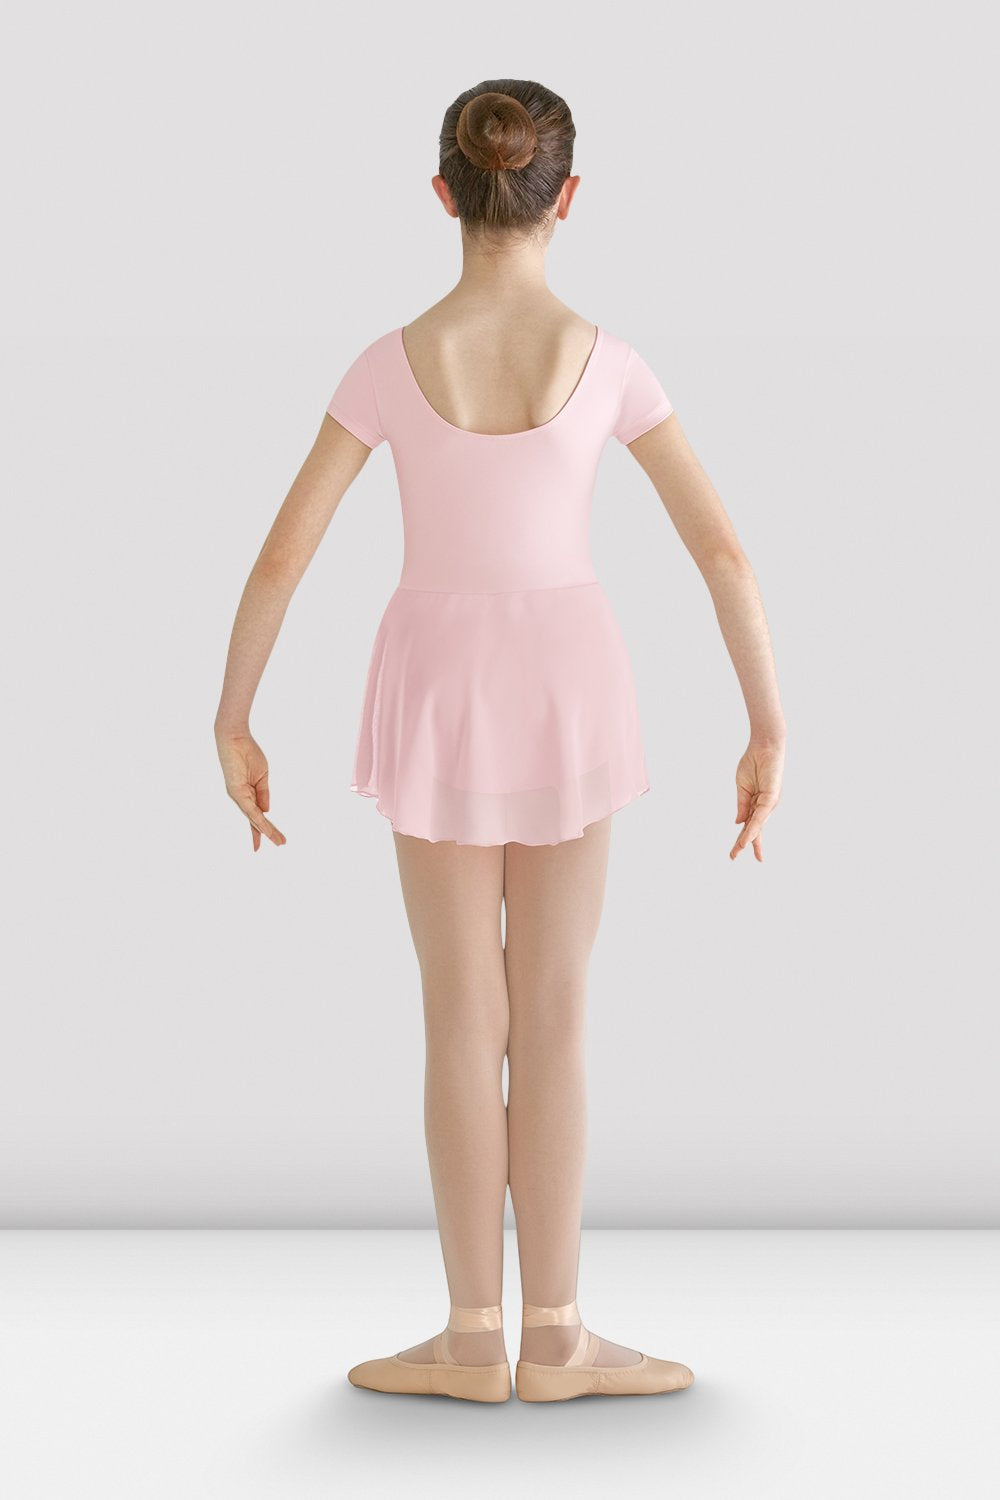 Girls Prisha Short Sleeve Skirted Leotard - BLOCH US